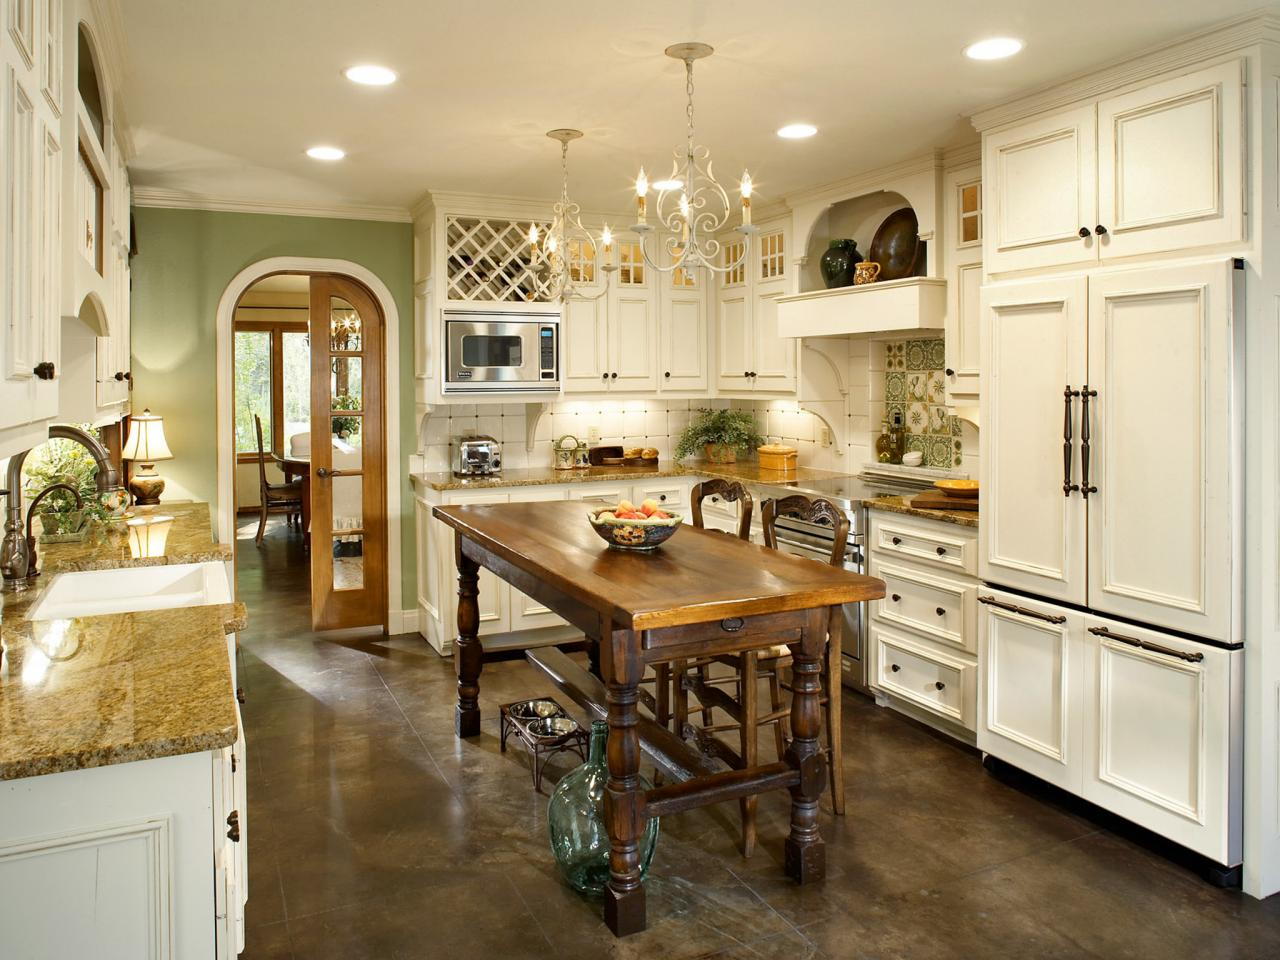 french country kitchen from u002770s disaster to french country masterpiece WGVLATB